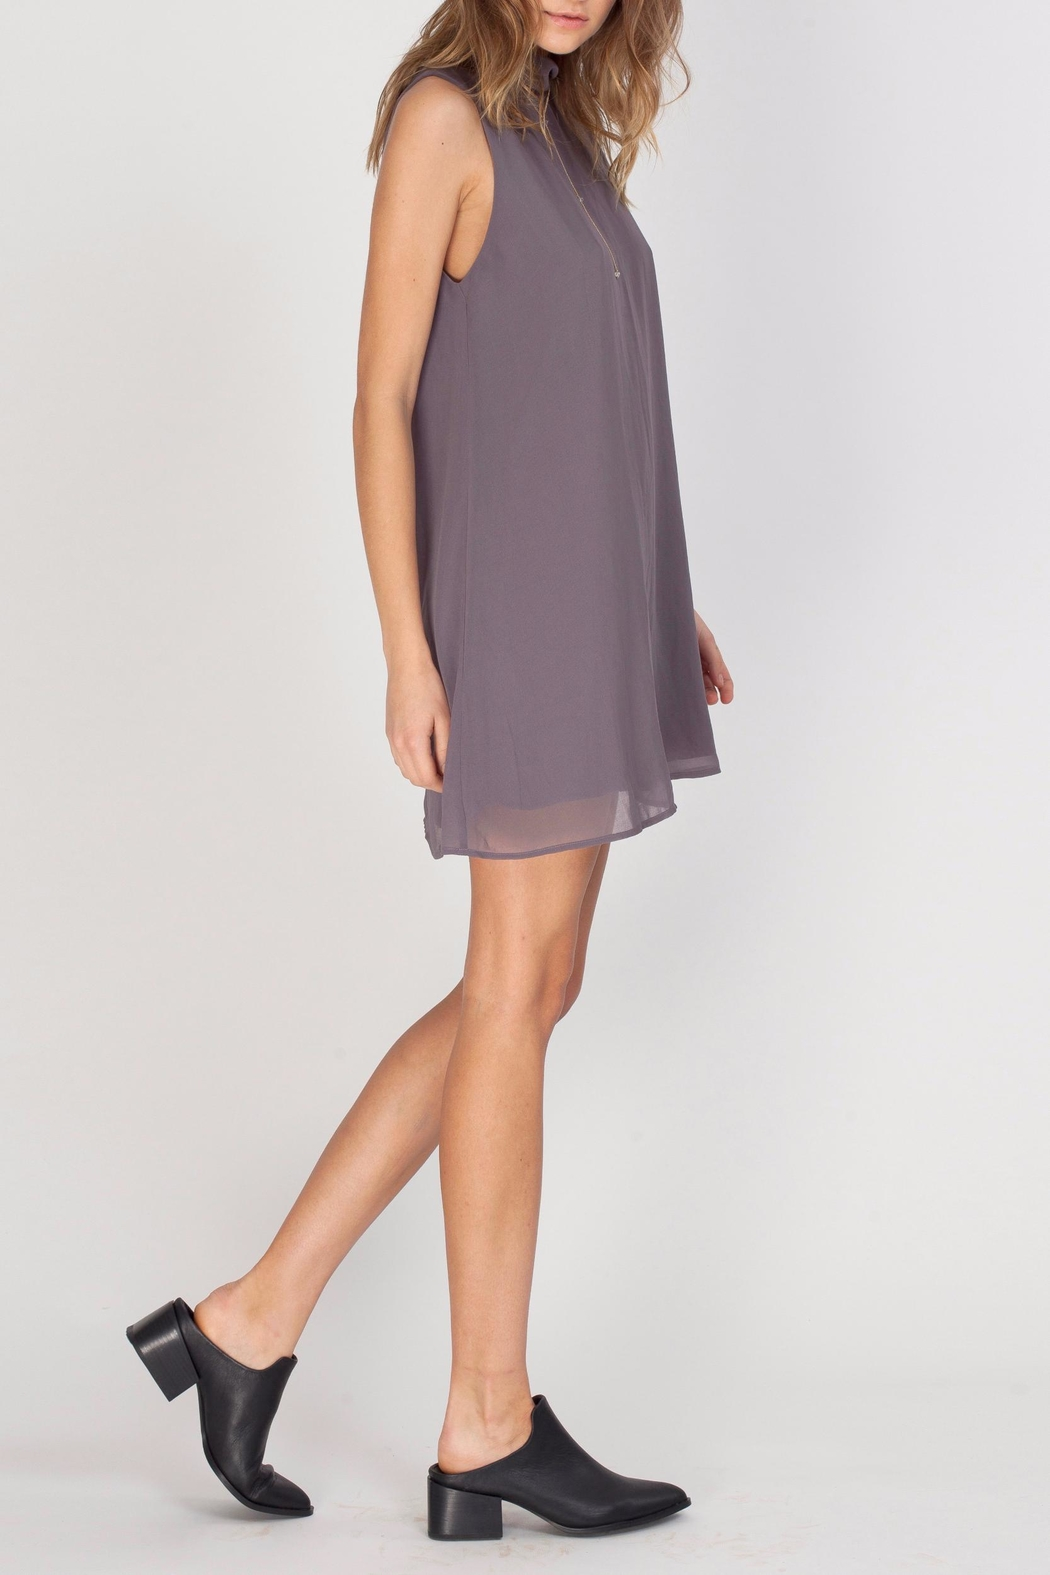 Gentle Fawn Mock Neck Dress - Side Cropped Image